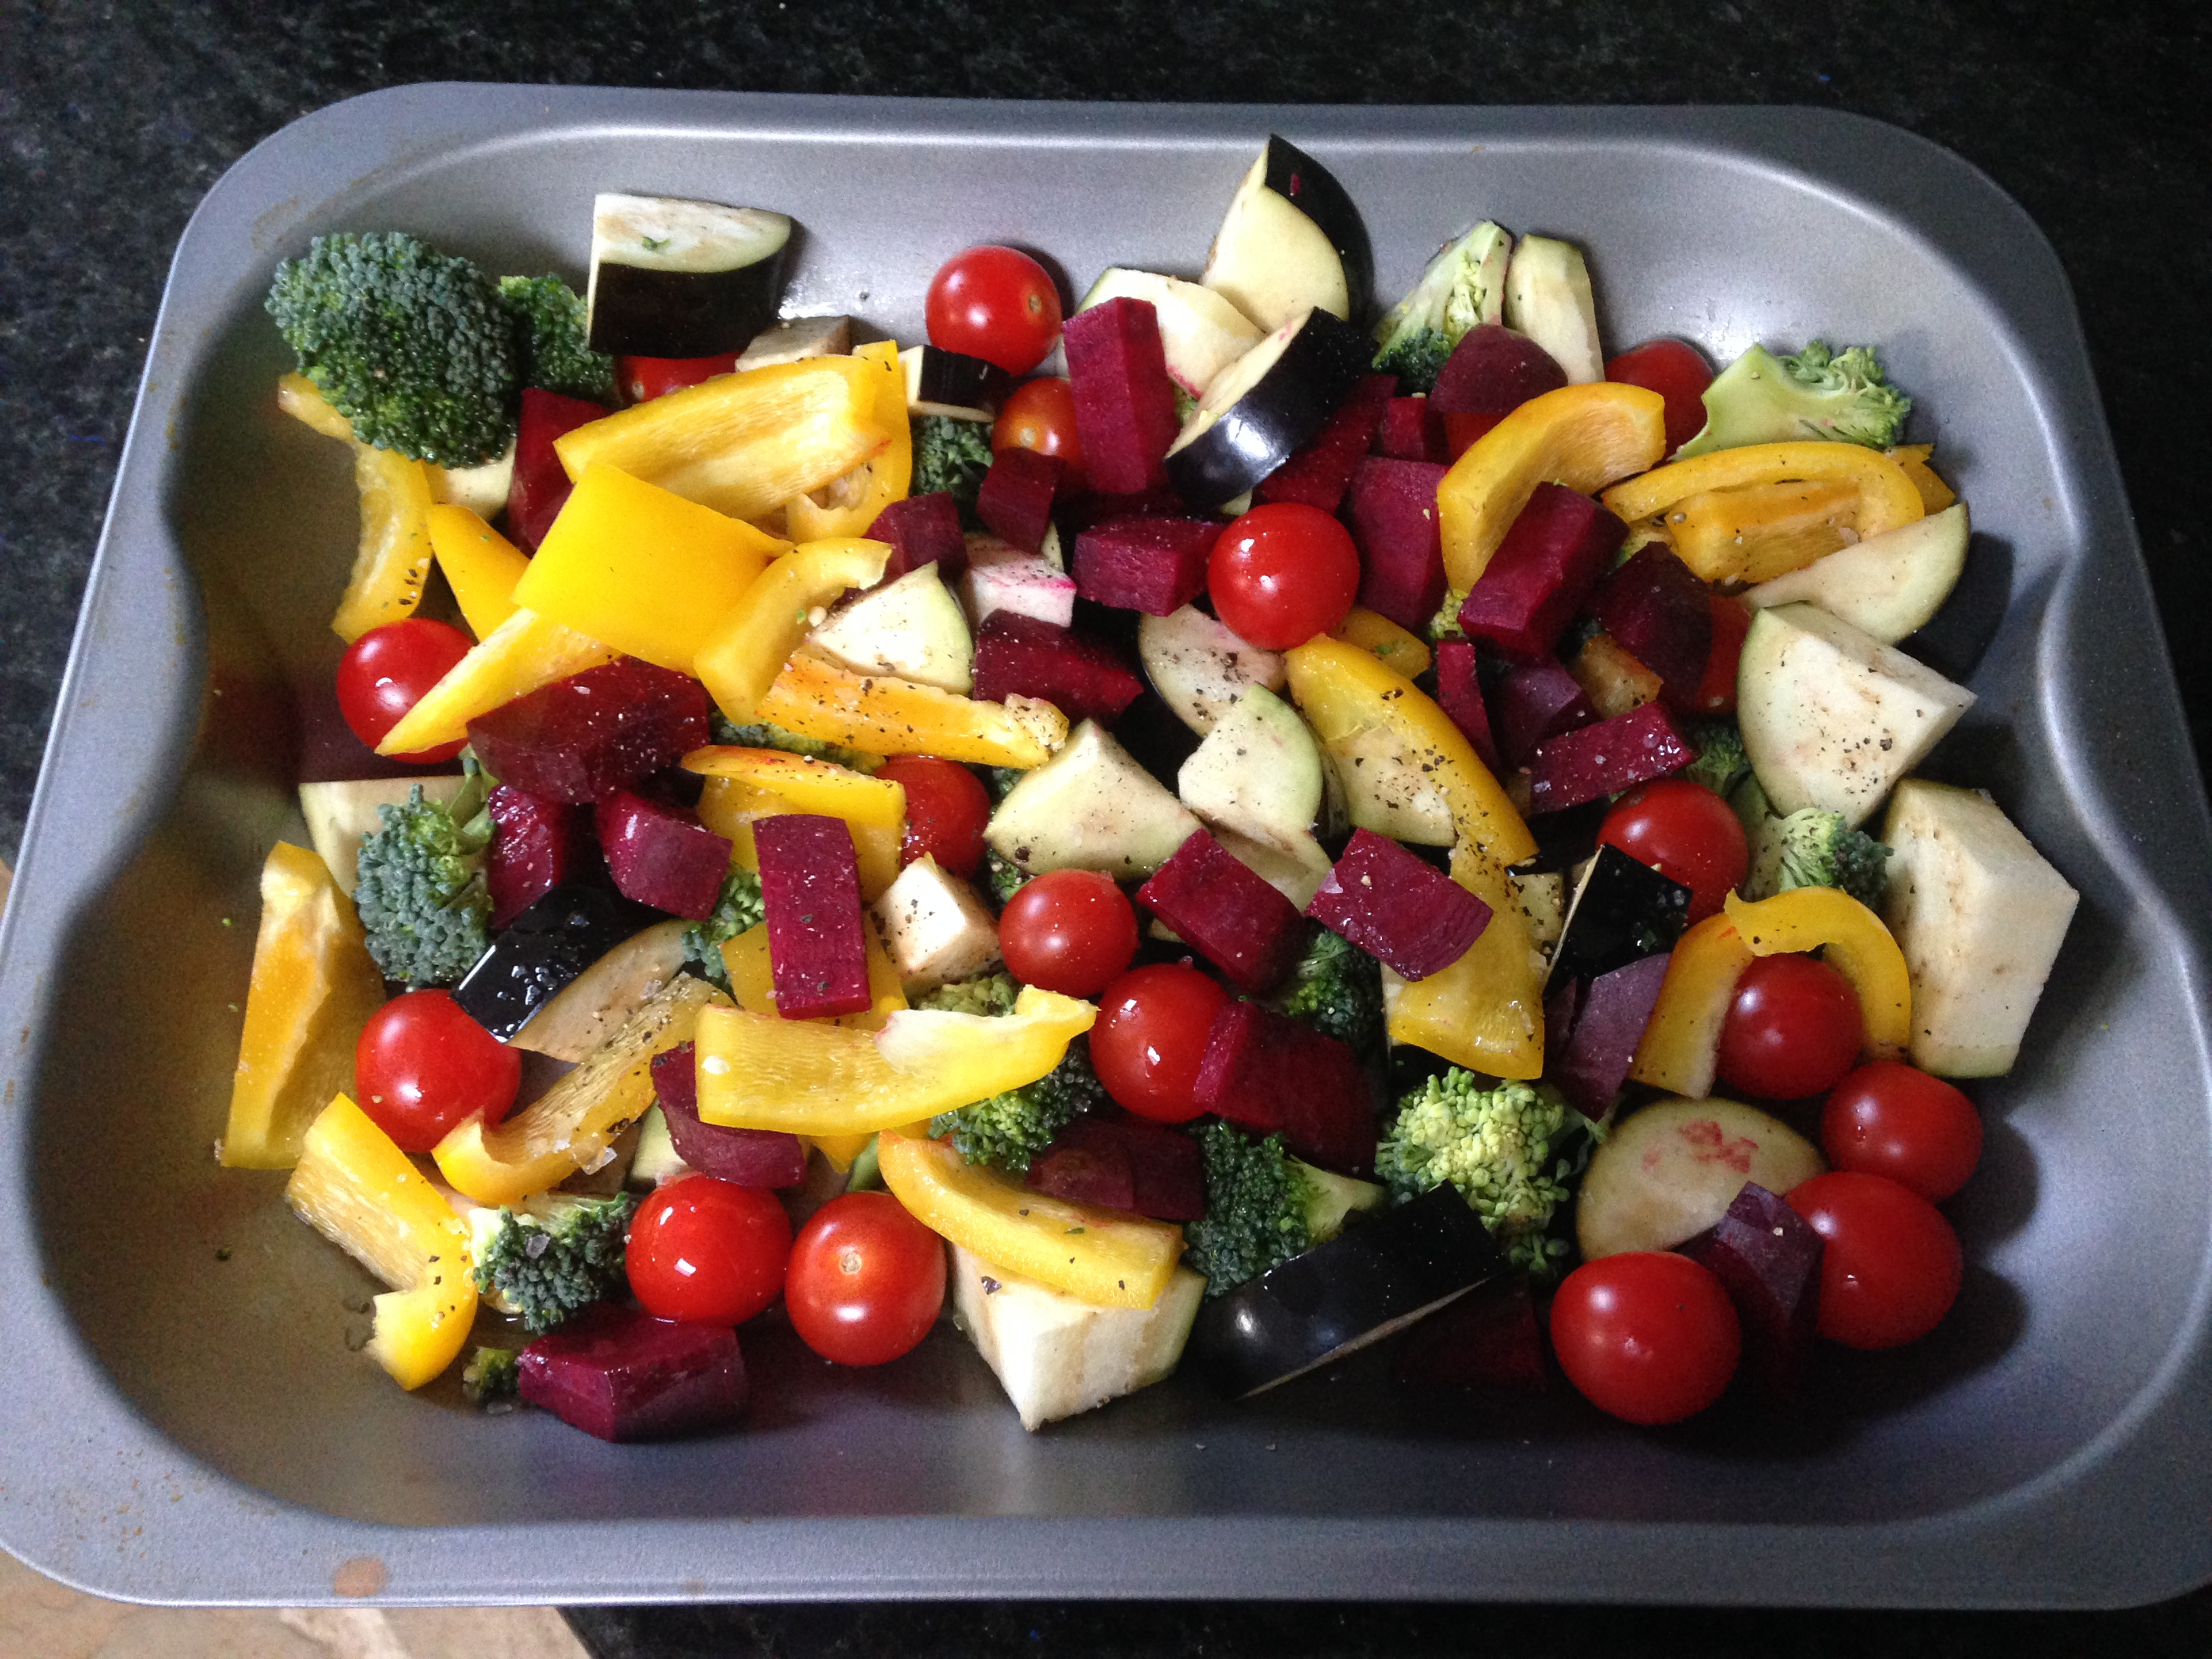 Tray of roast vegetables